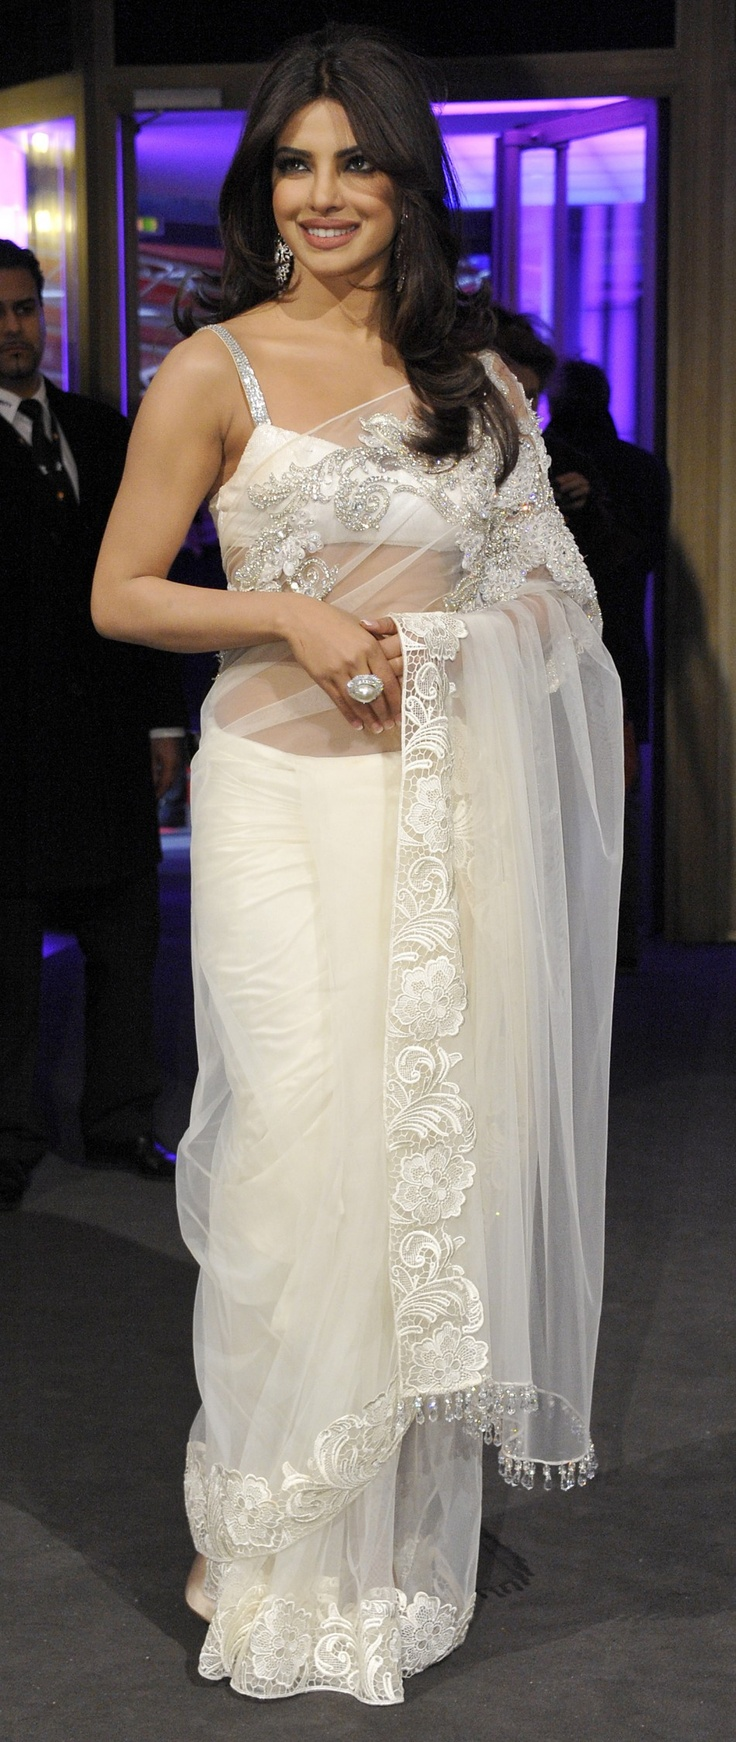 priyanka chopra sari is always as dashing and sensational as she herself is. In the above picture, the sari worn by Priyanka is embellished with beautiful embroidery, the border is done in velvet material. The blouse of the saree is also matching silk material as the saree itself. The blouse has been made as shorter as it could have been. There is a beautiful silver embroidery on the straps of the sari. The elegant net saree dazzles its way through evening parties especially receptions and